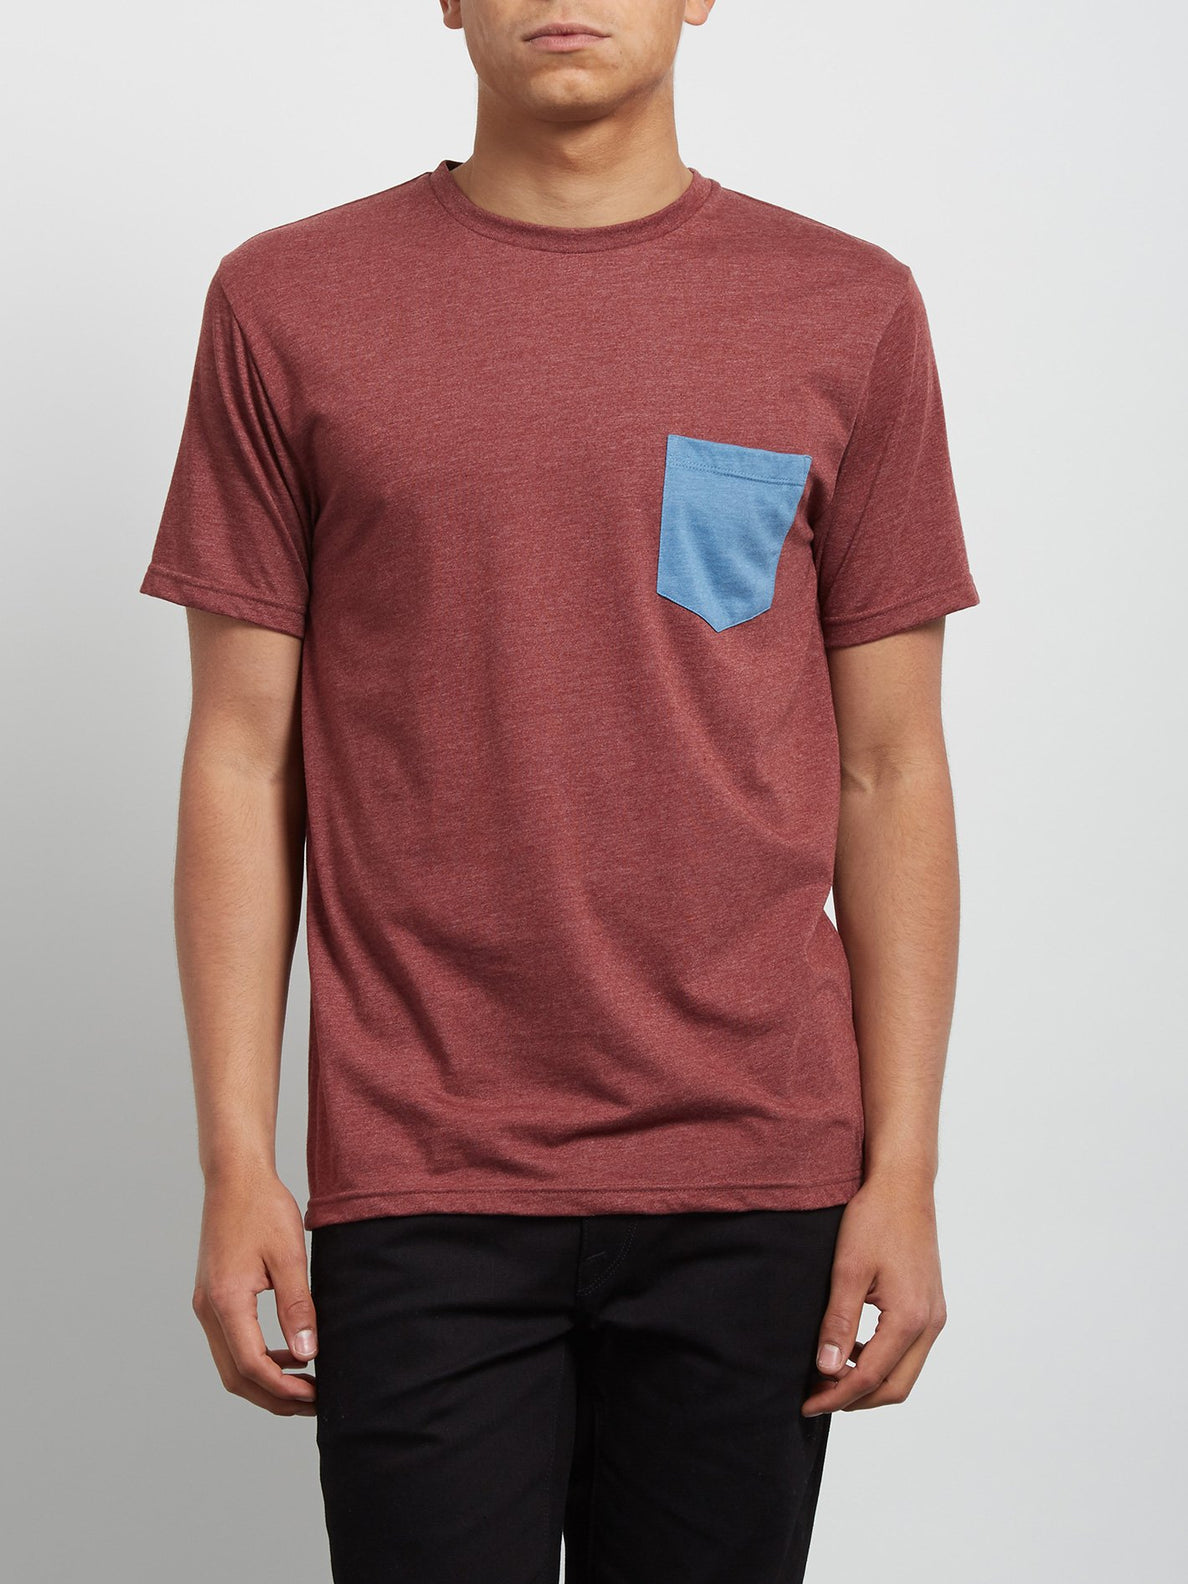 Pocket Short Sleeve Tee - Crimson